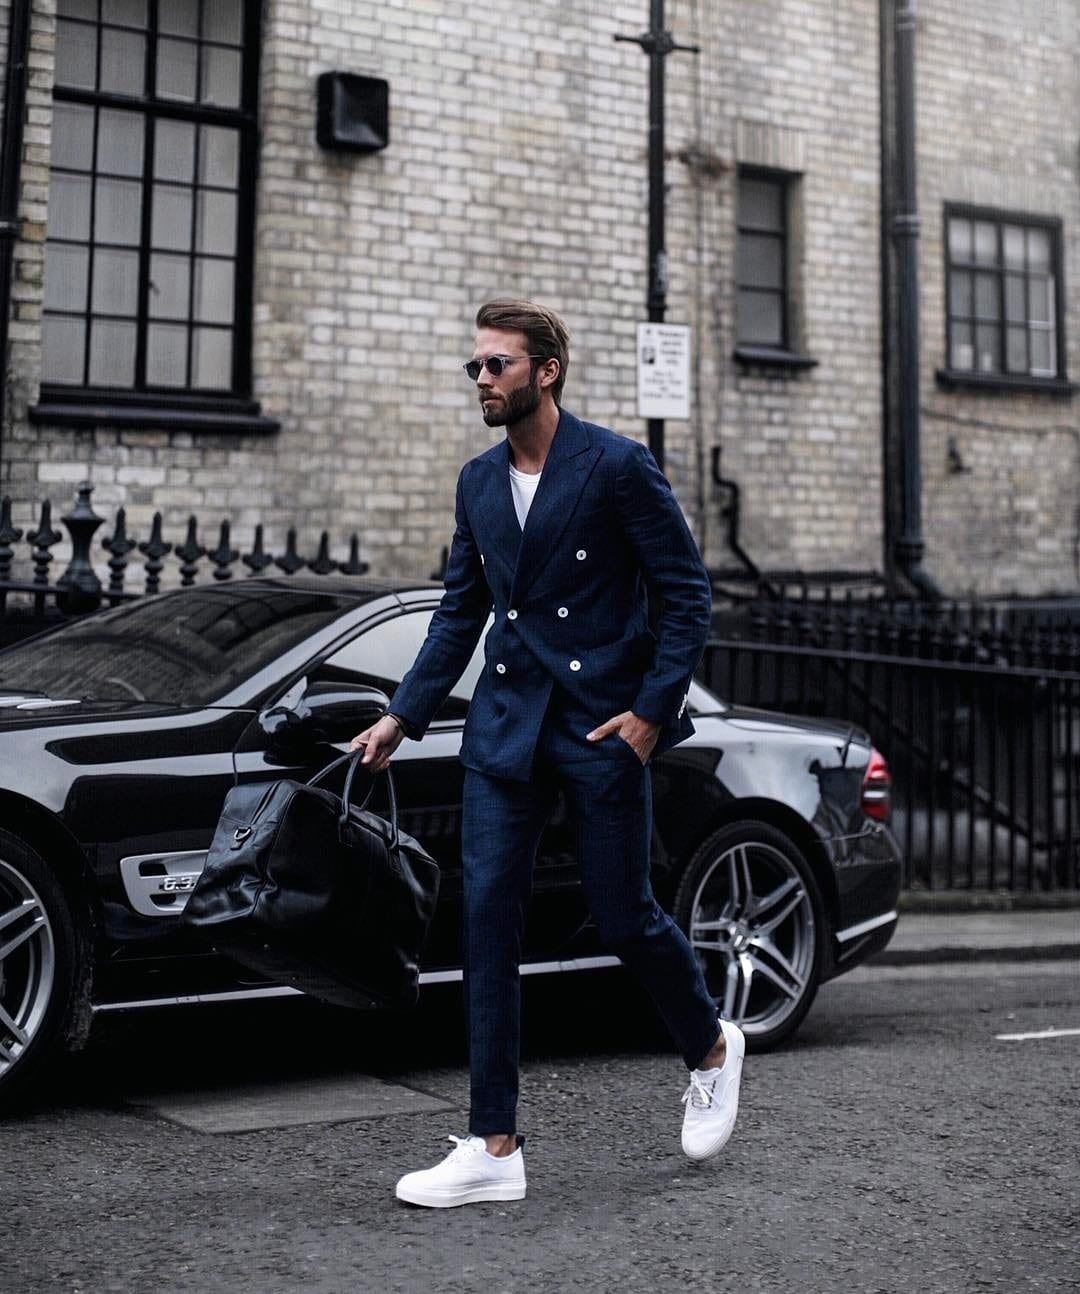 navy Blue Double breasted Suit withy White Sneakers for men